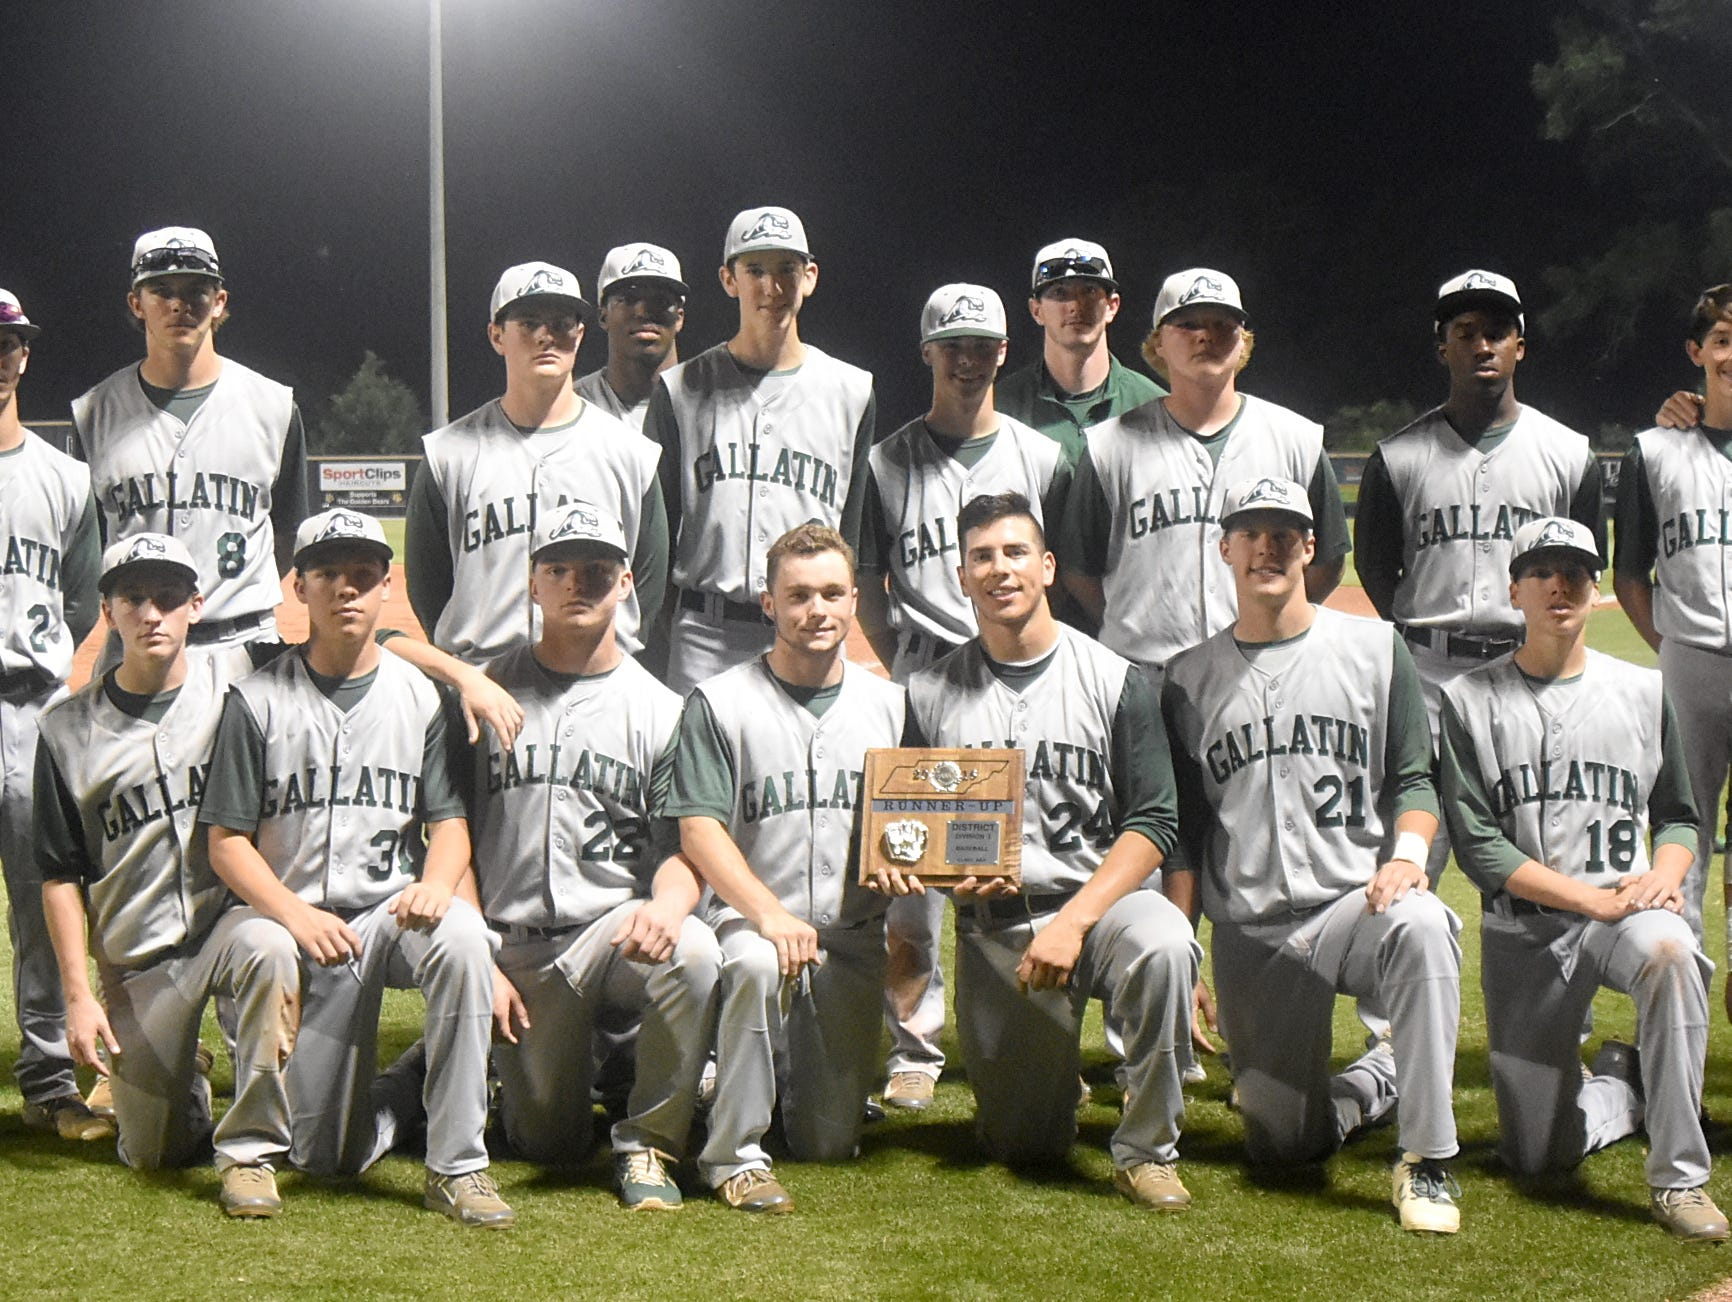 The Gallatin High baseball team finished as the District 9-AAA Tournament runner-up.